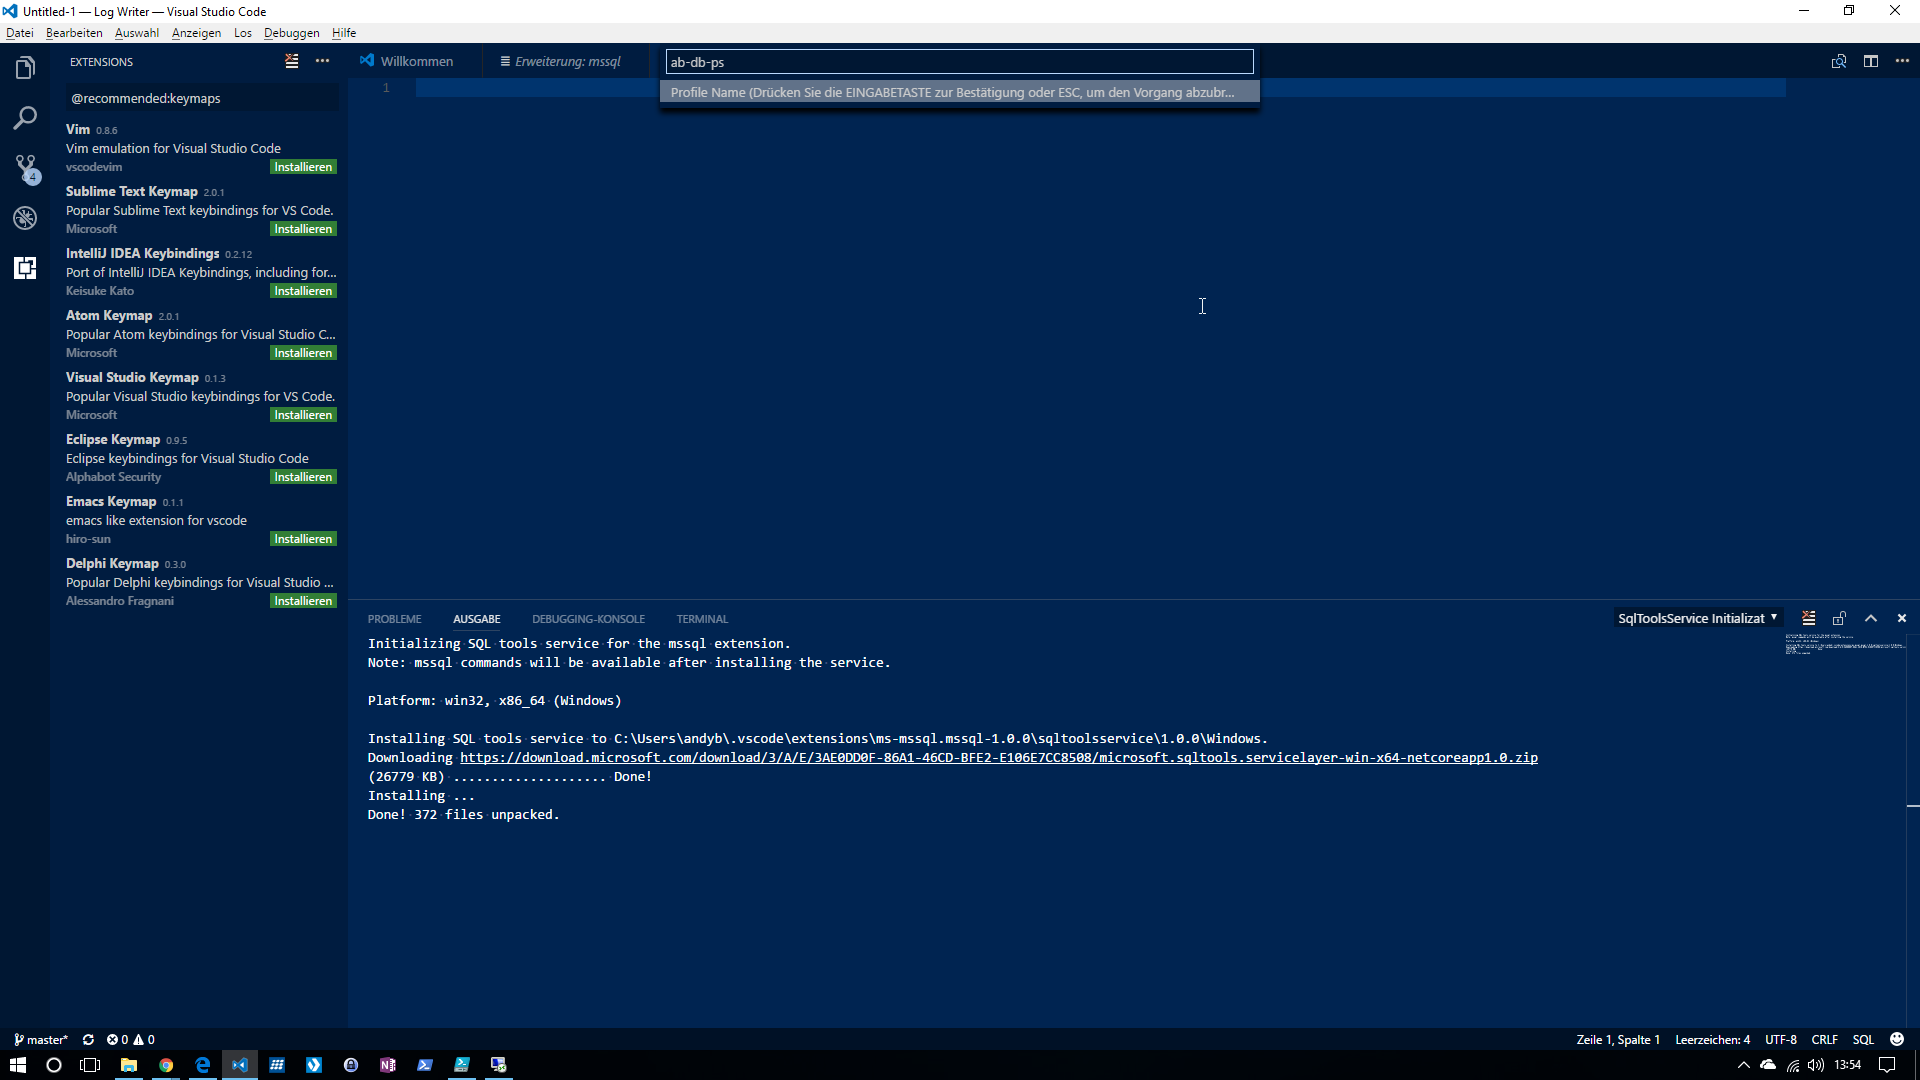 azure_sql_create_conprofile_09